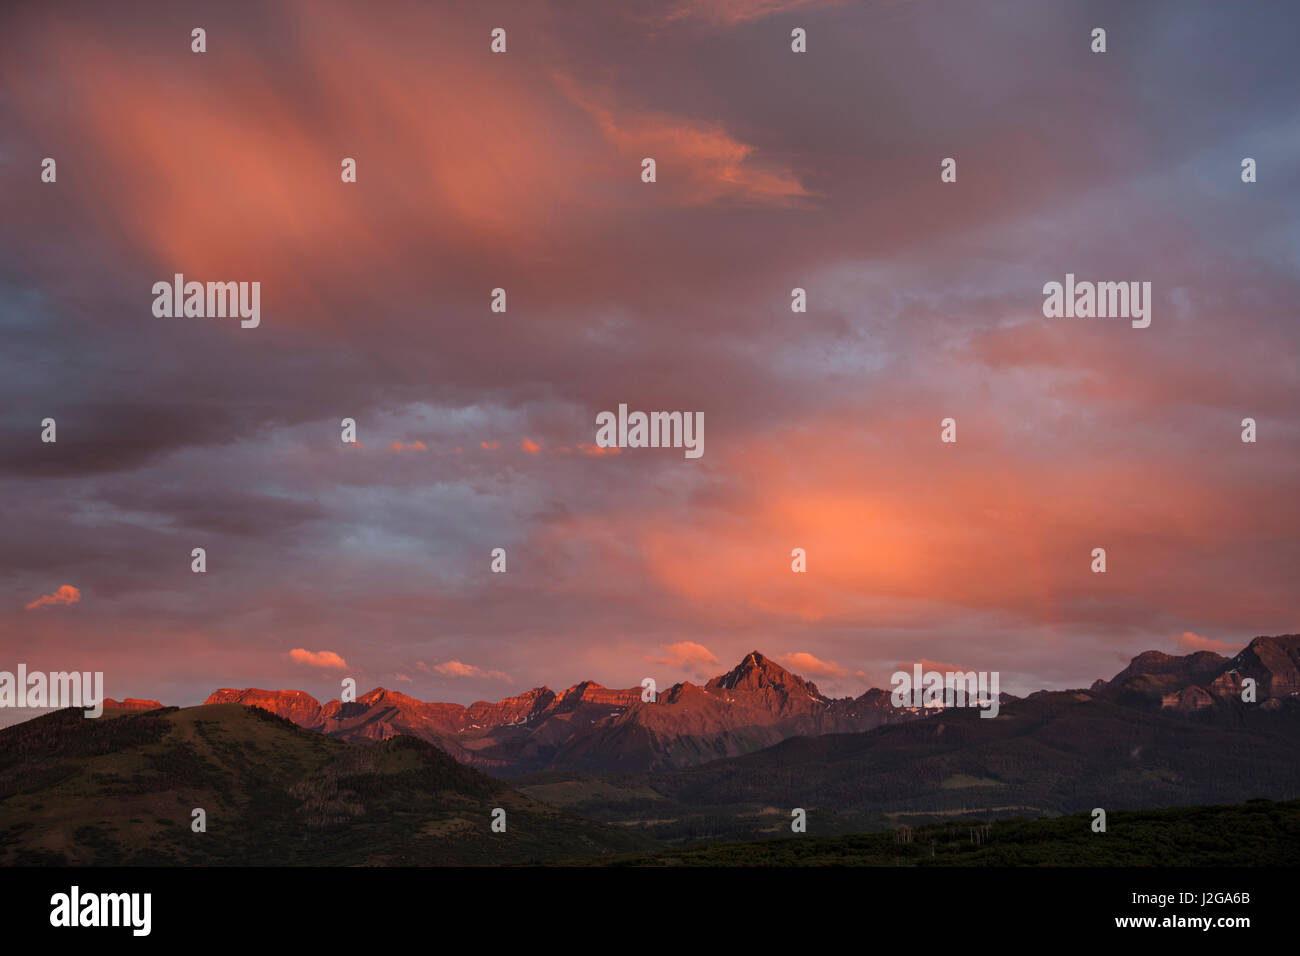 USA, Colorado, Sneffels Range. Rain clouds over mountains at sunset. Credit as: Don Grall / Jaynes Gallery / DanitaDelimont.com - Stock Image